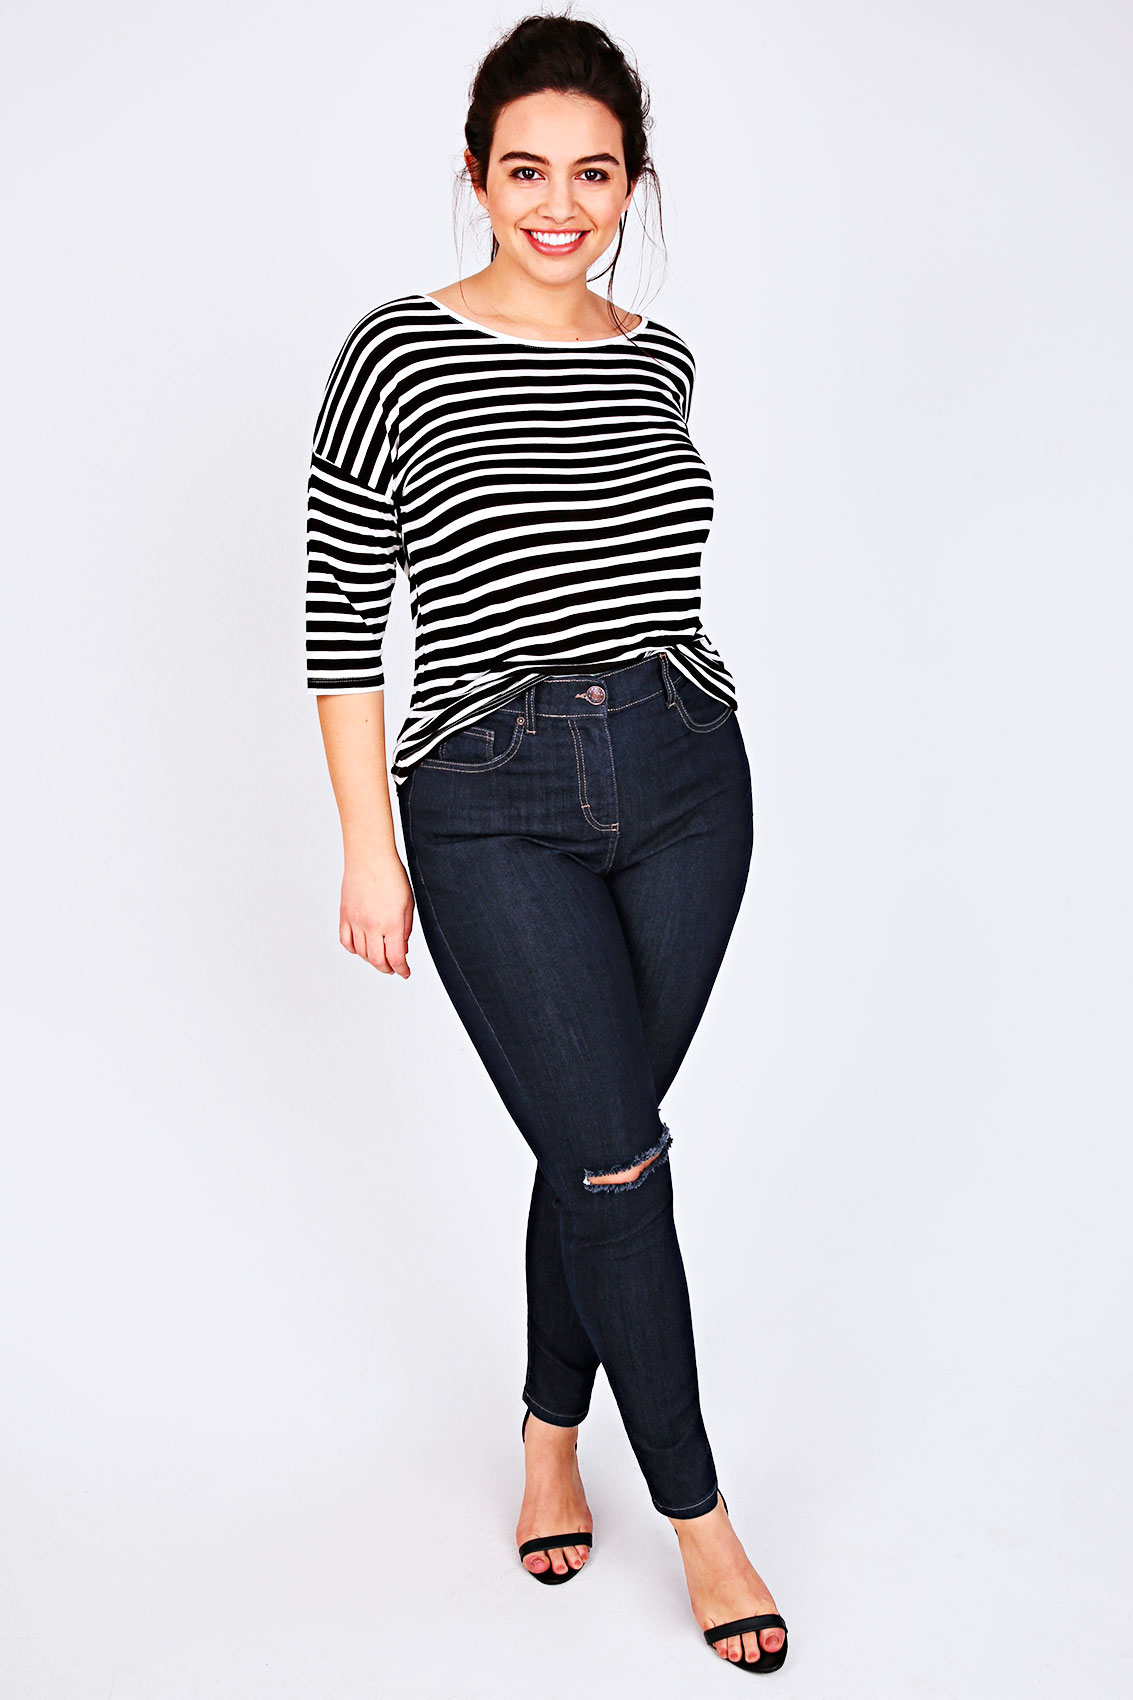 Find a full collection of Women's Plus Size Bottoms,Plus Size Jeans in modern and classic styles, also find plus size dresses, jeans, career, pants, shirts, sweaters, coats and more item(s) added to .